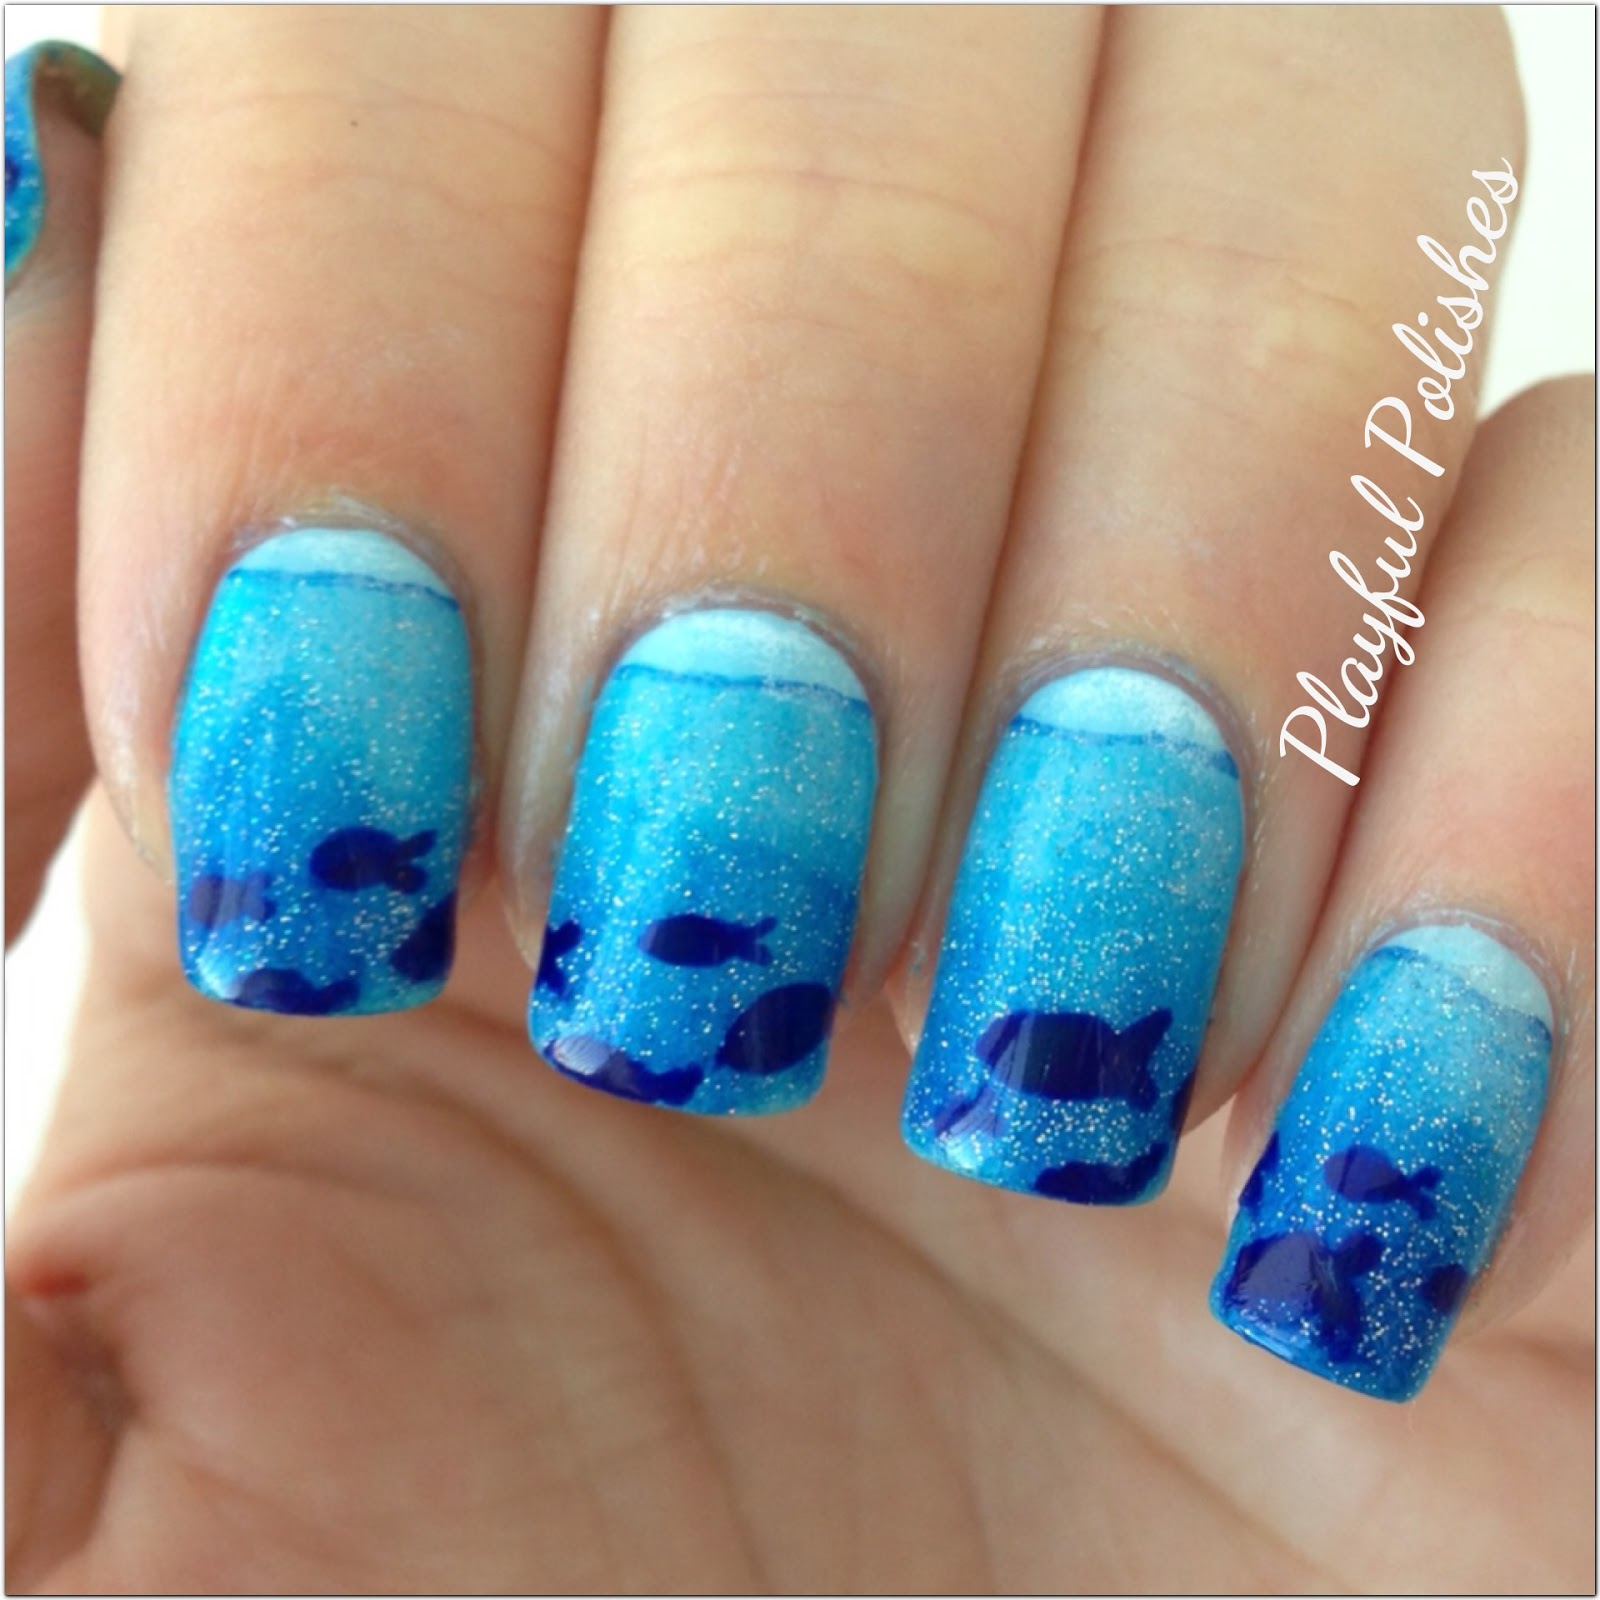 Playful Polishes: JUNE NAIL ART CHALLENGE: OCEAN NAILS